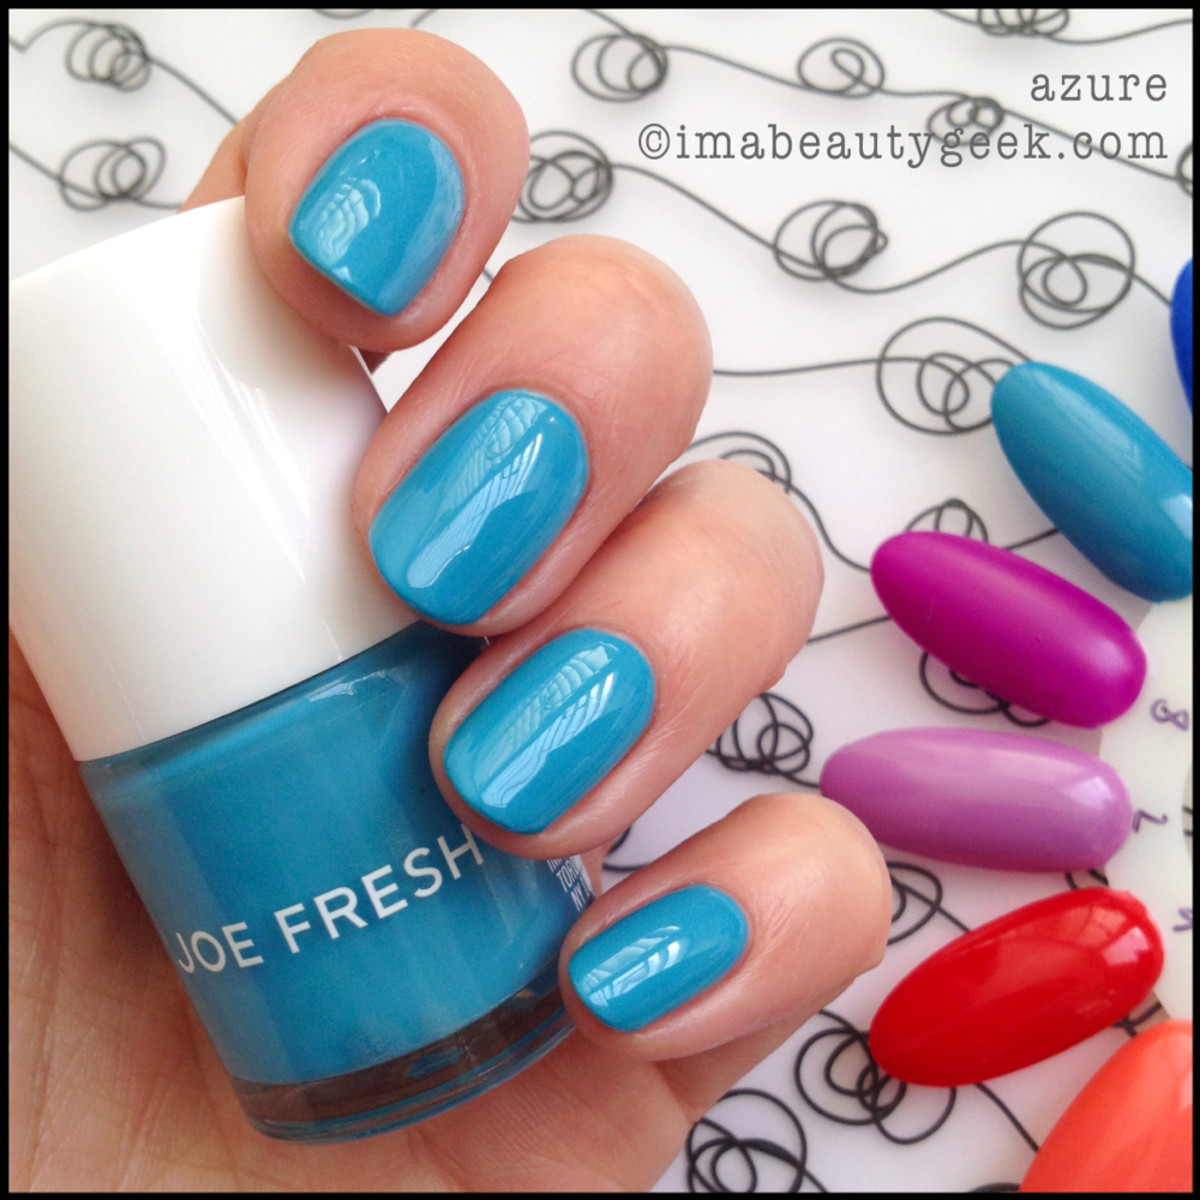 Joe Fresh Polish Azure